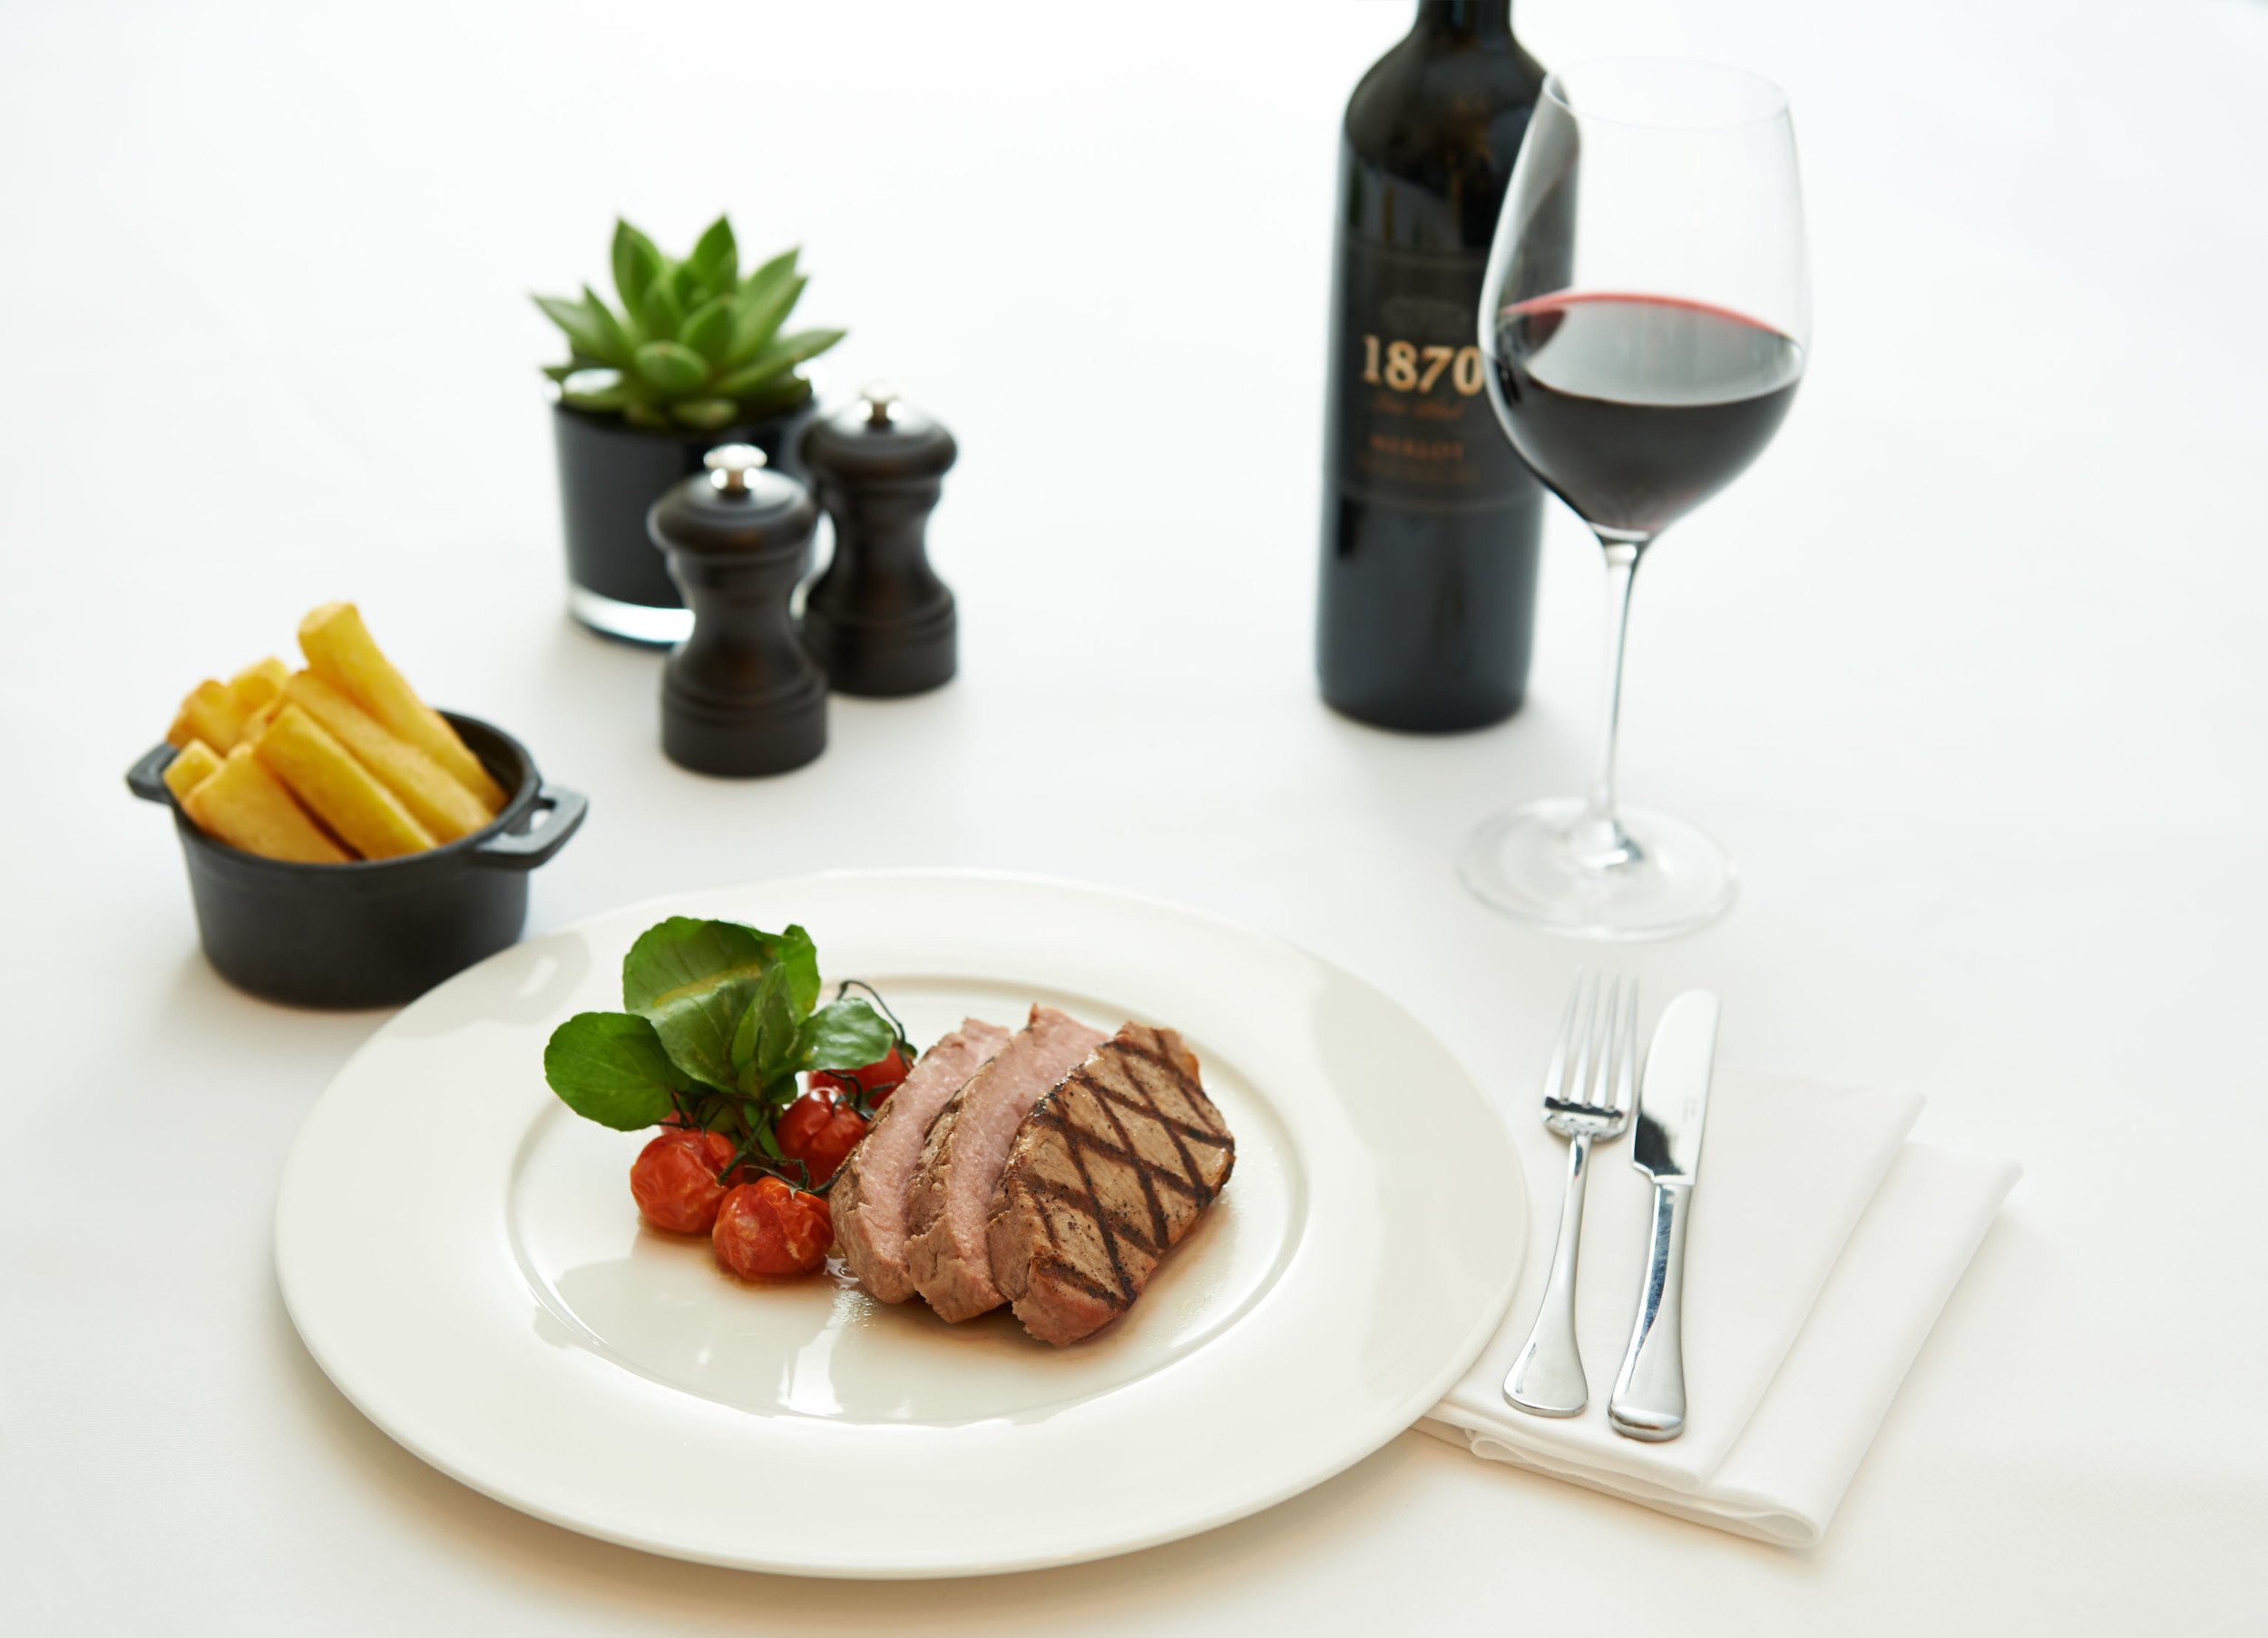 steak and a bottle of wine on a restaurant table